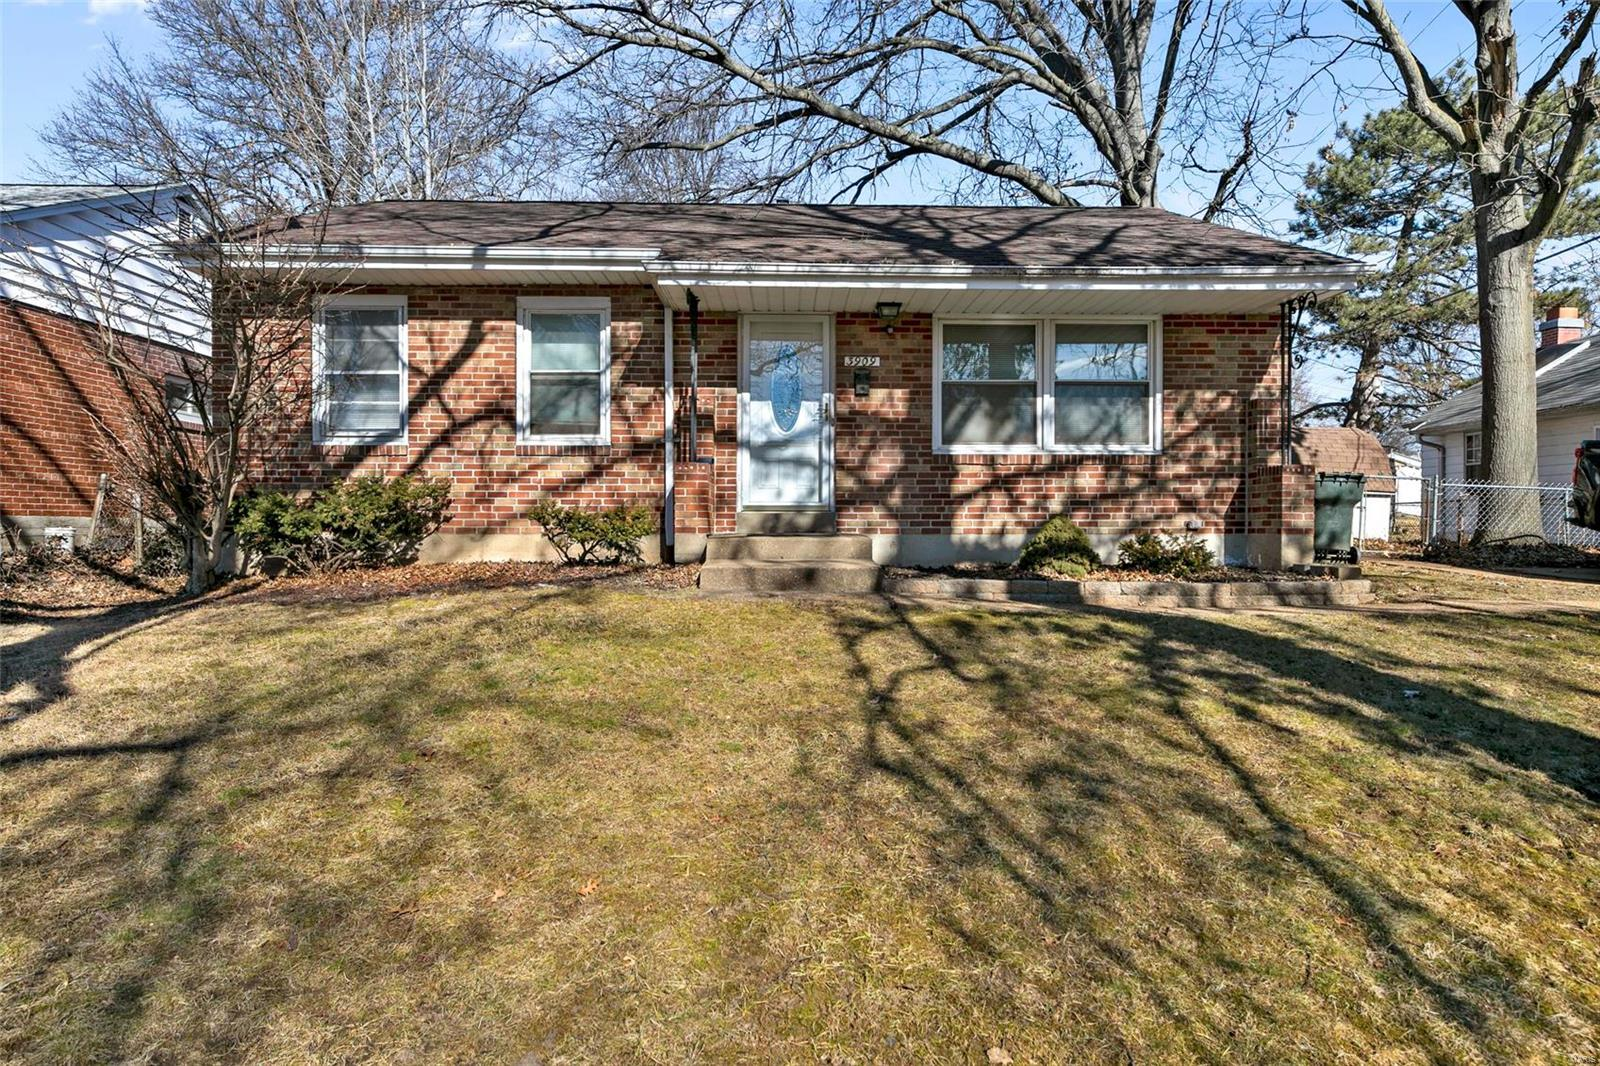 3909 Louis street Property Photo - St Louis, MO real estate listing